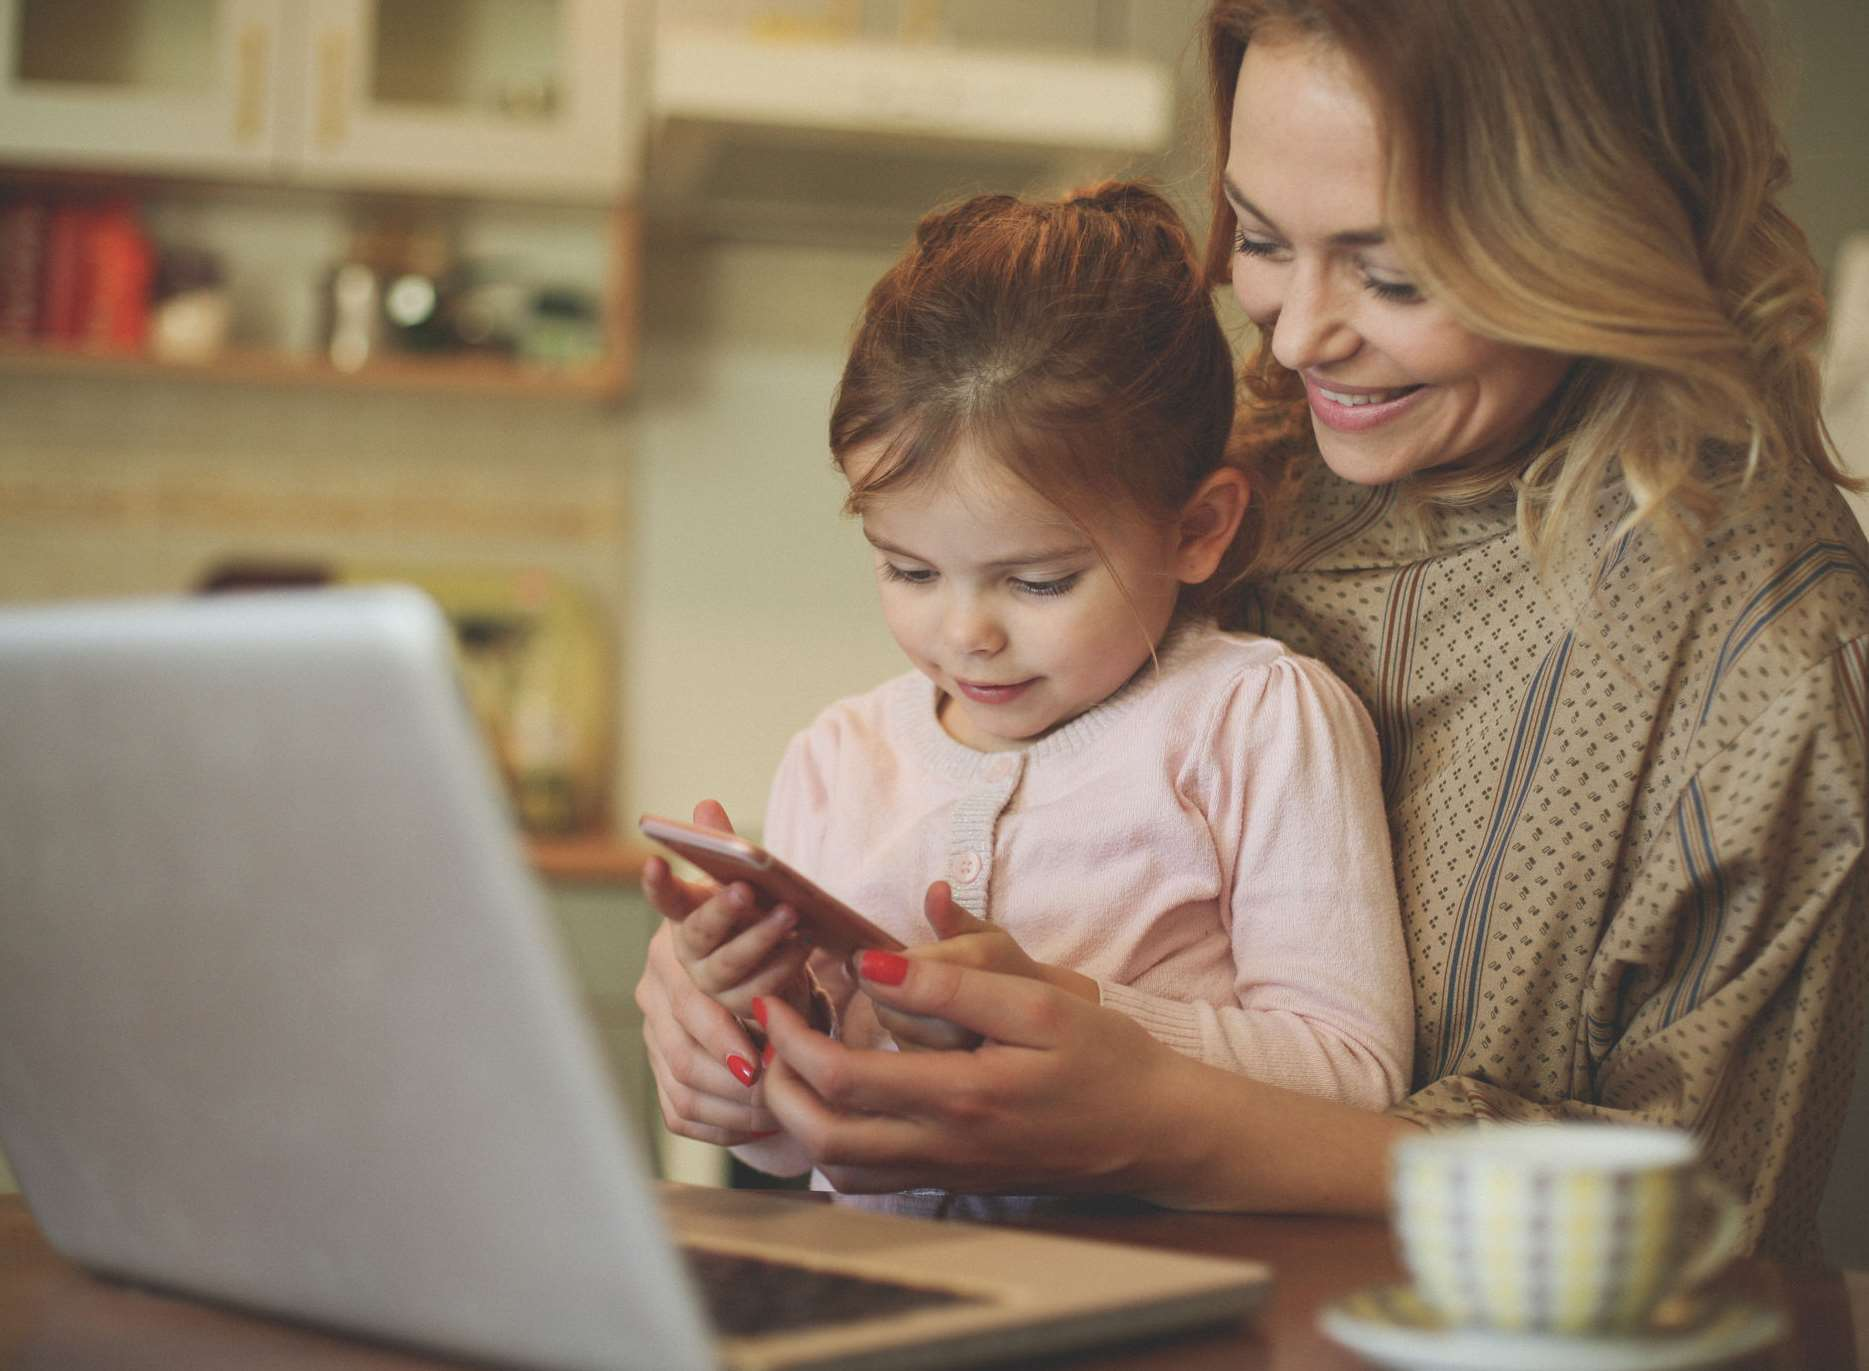 Using parental controls is one of the best ways to help keep children safe online